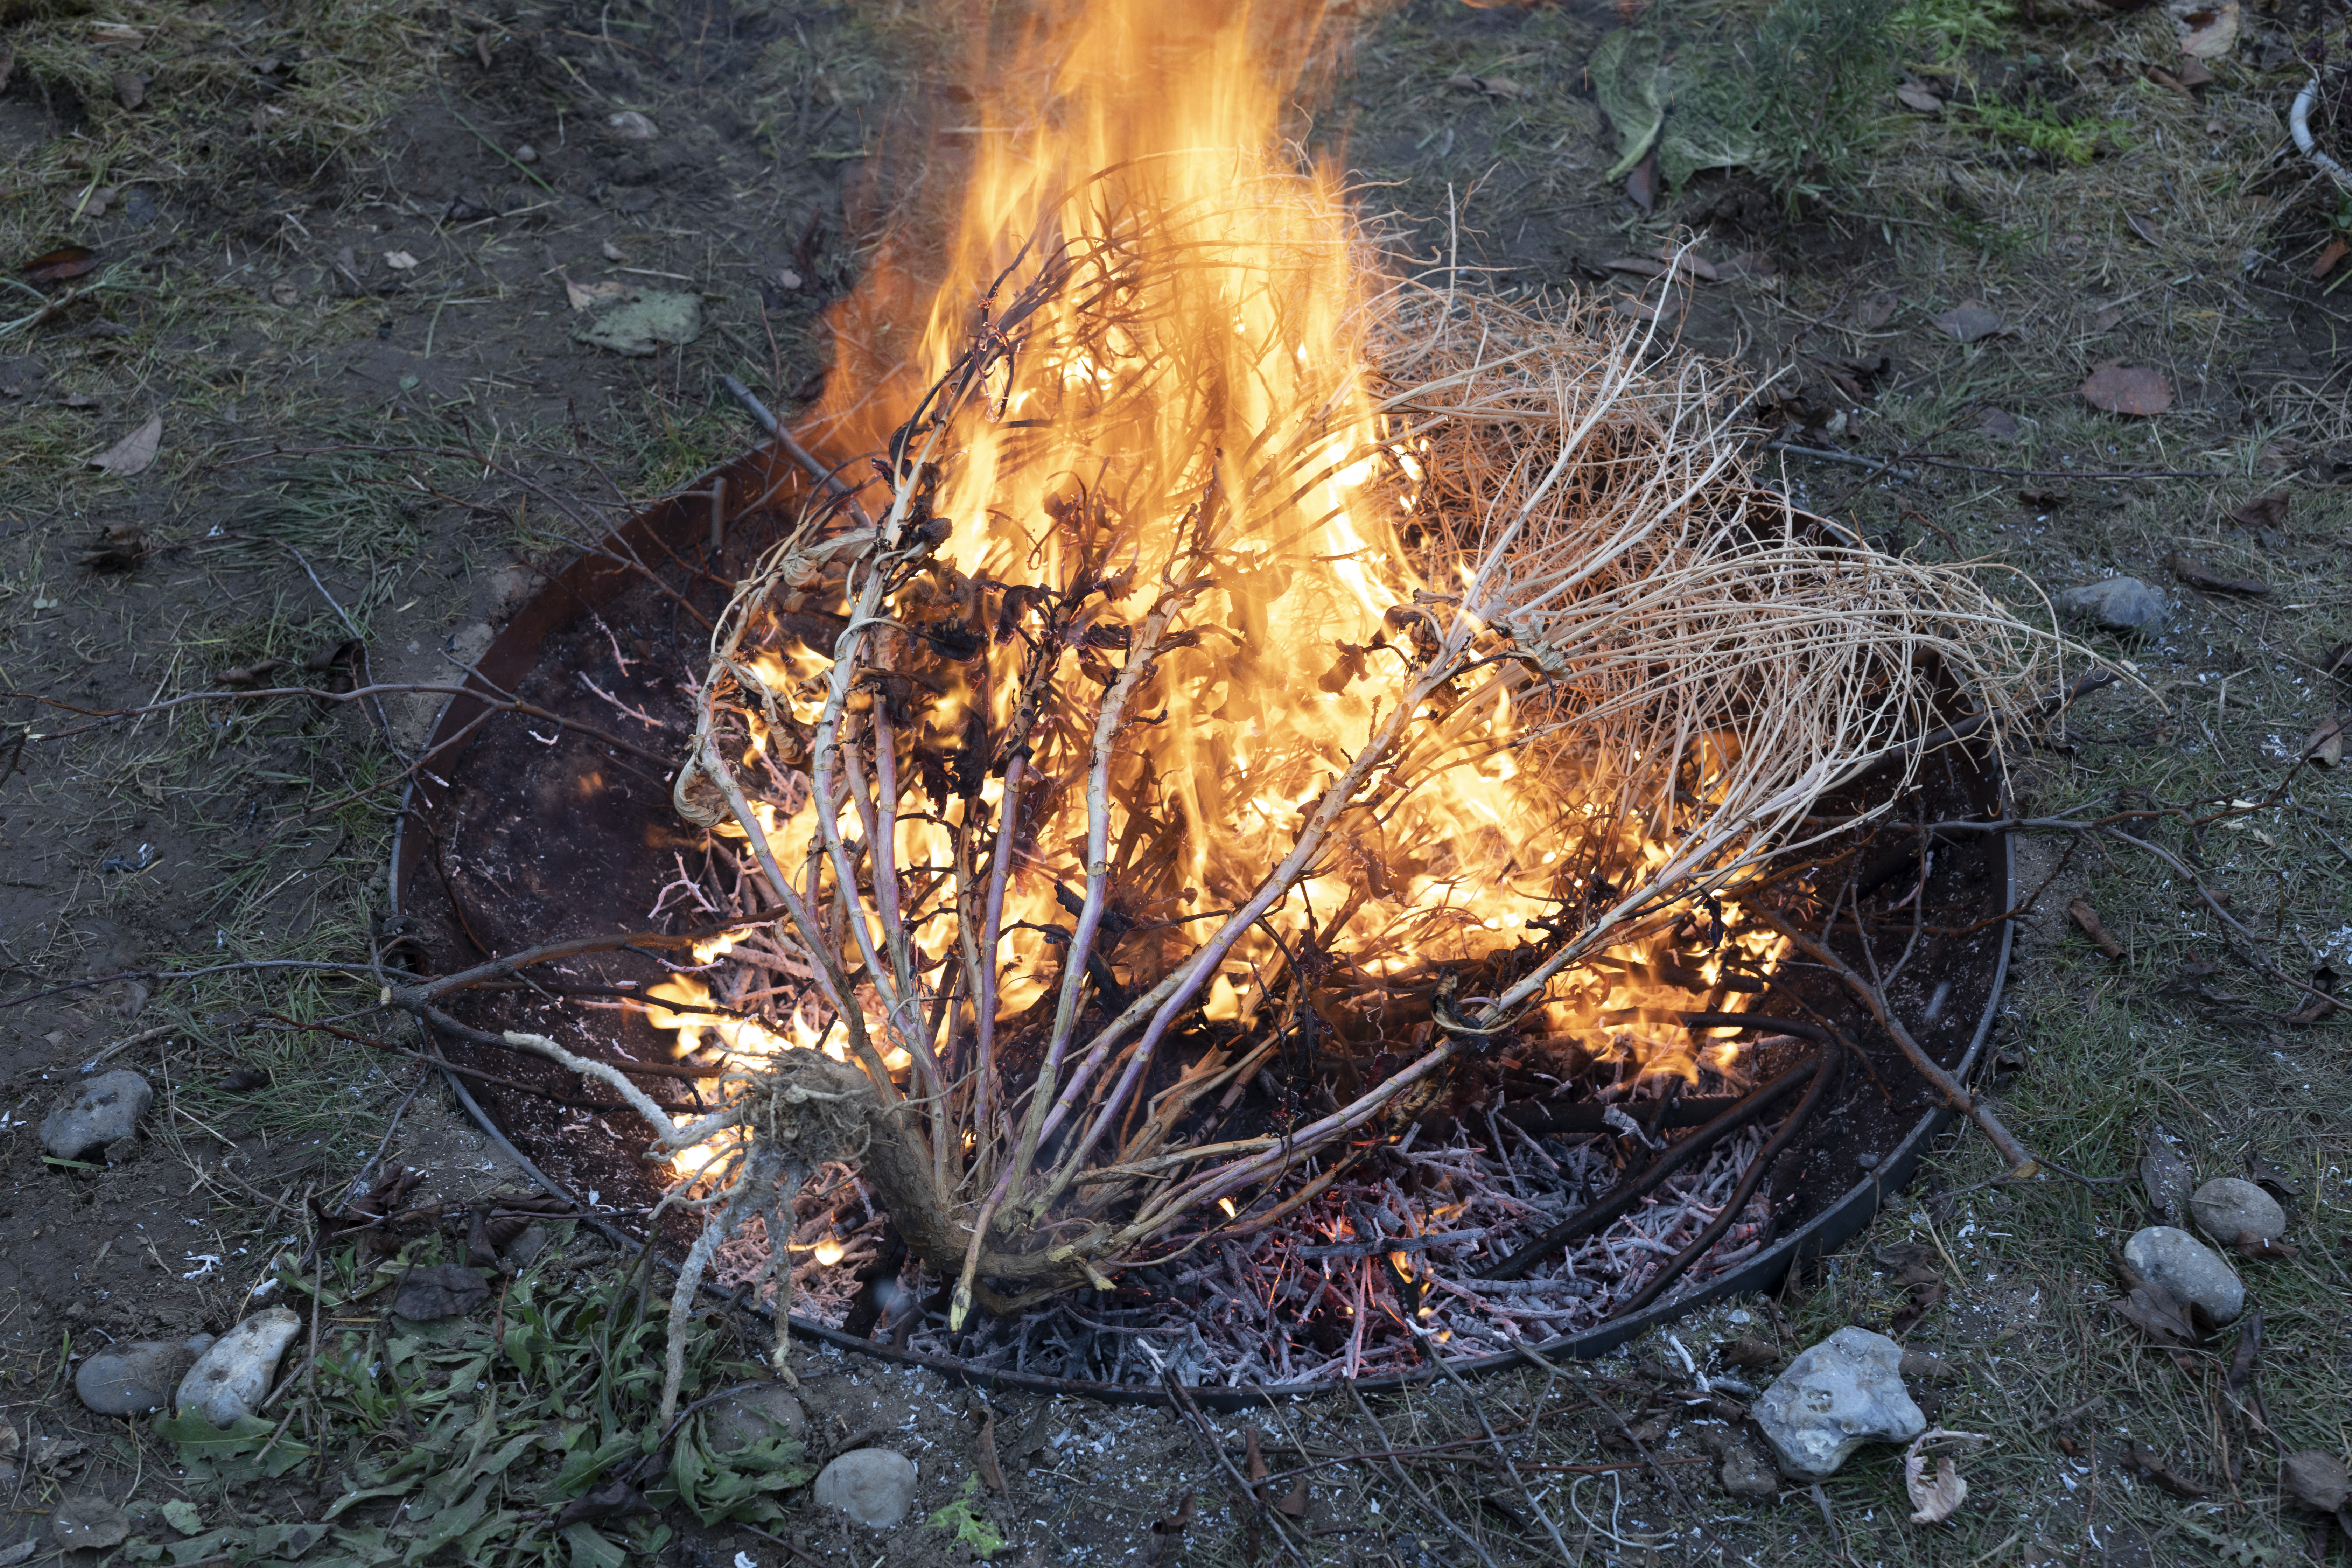 Burning-of-a-dried-broccoli-plant-carrying-seeds-from-Feed-The-Organism-Happening-©Viktoria-Sophie-Conzelmann